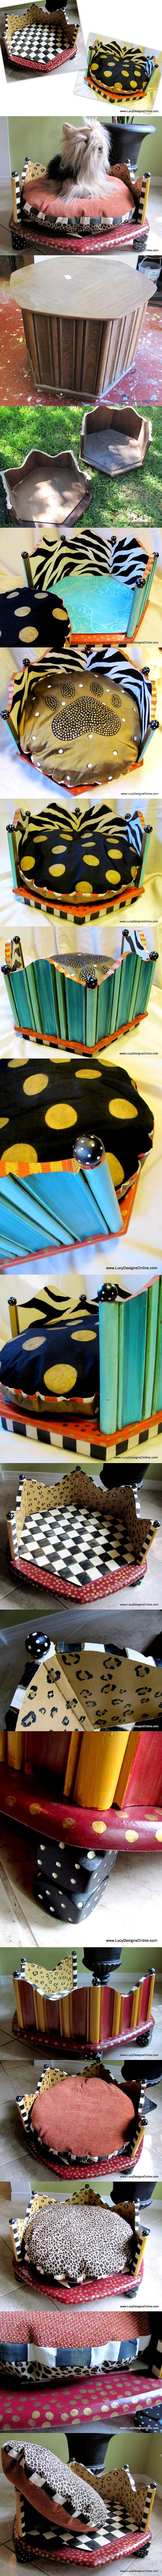 DIY Hand Painted Round Dog Beds from an End Table in Zebra and Leopard Print 2